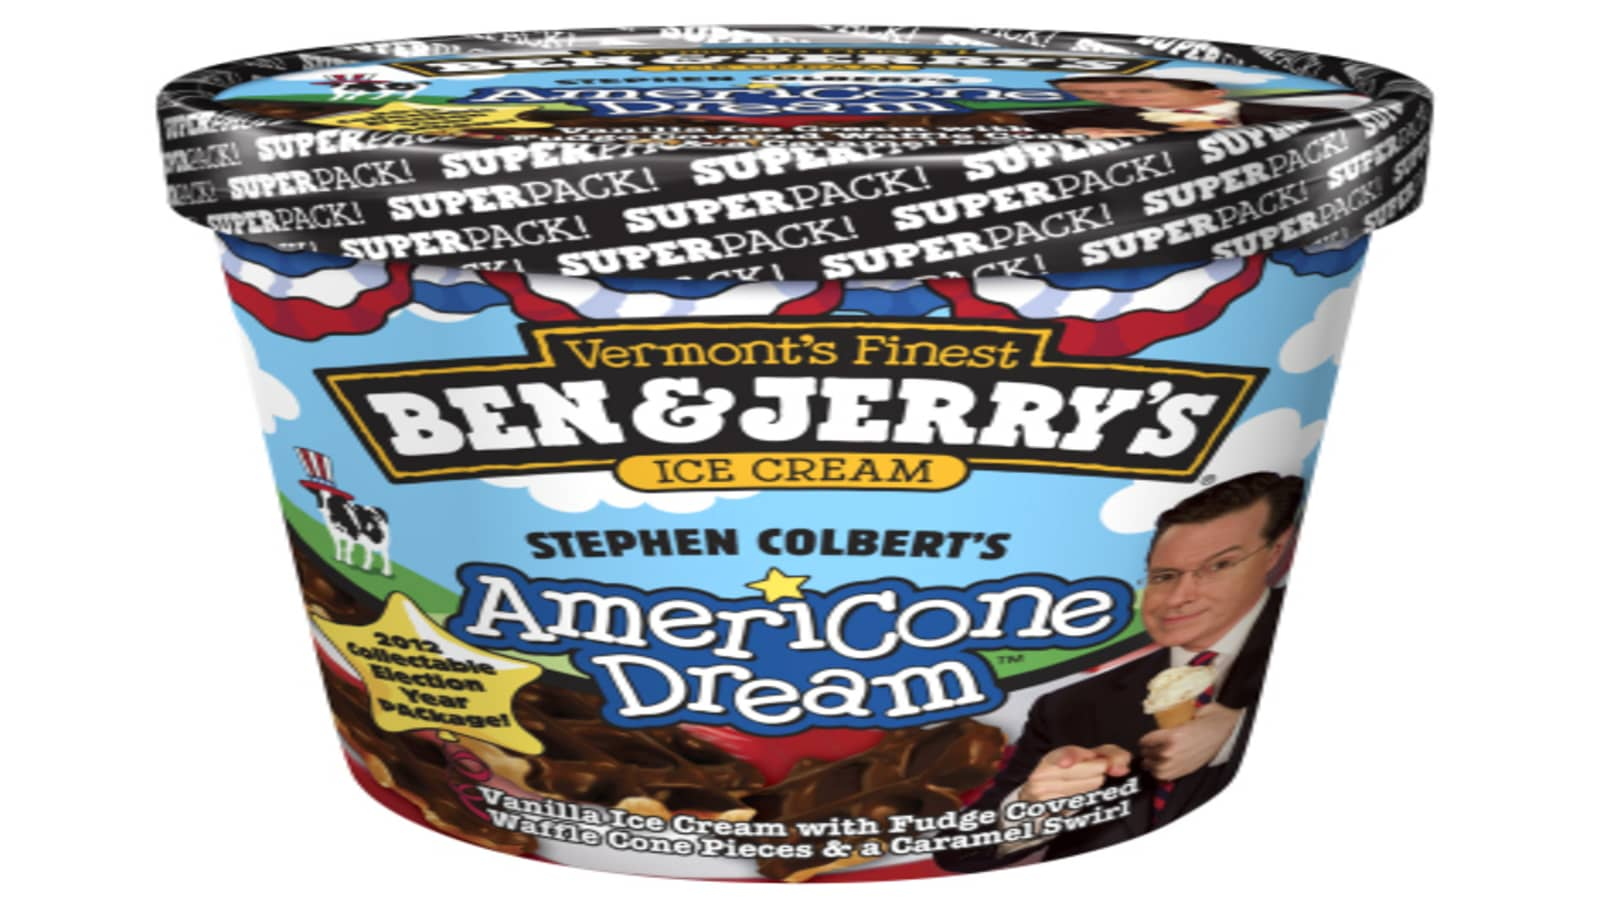 Ben Jerry S Introduces Its Superpack To Highlight Money In Politics Show more on imdbpro ». superpack to highlight money in politics